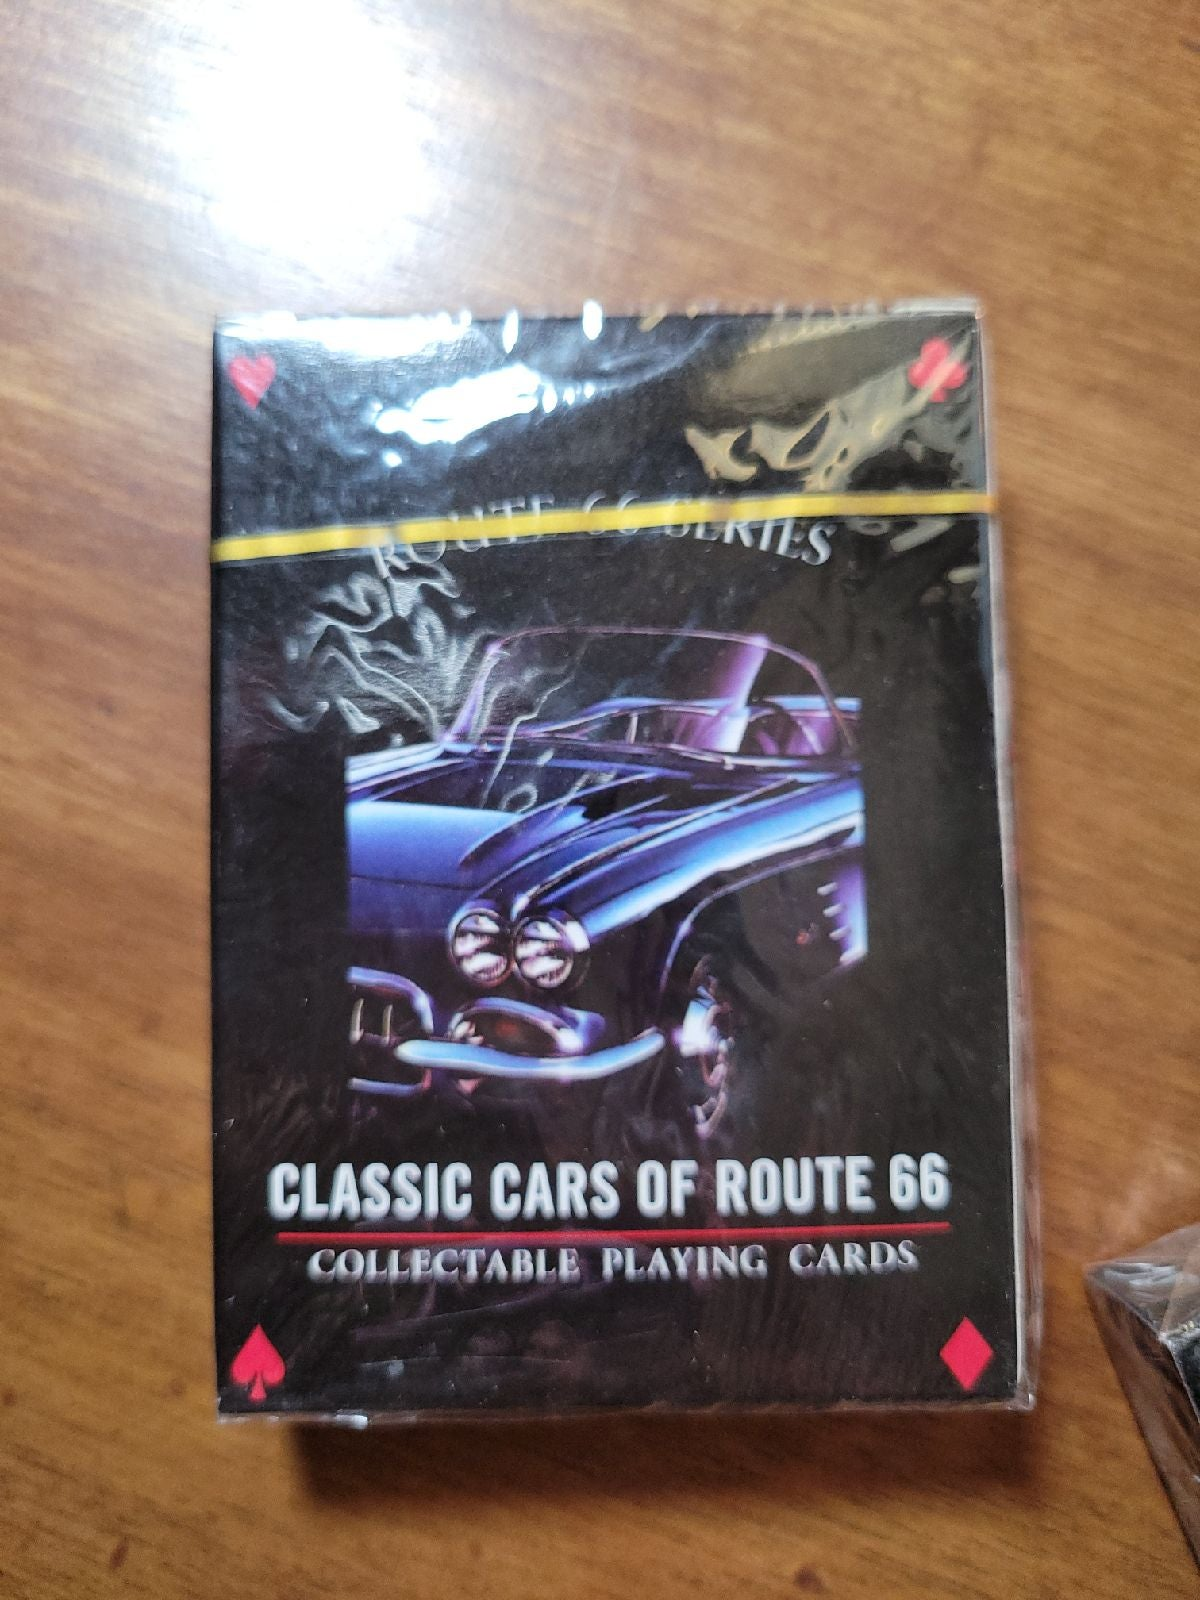 Route 66 players cards